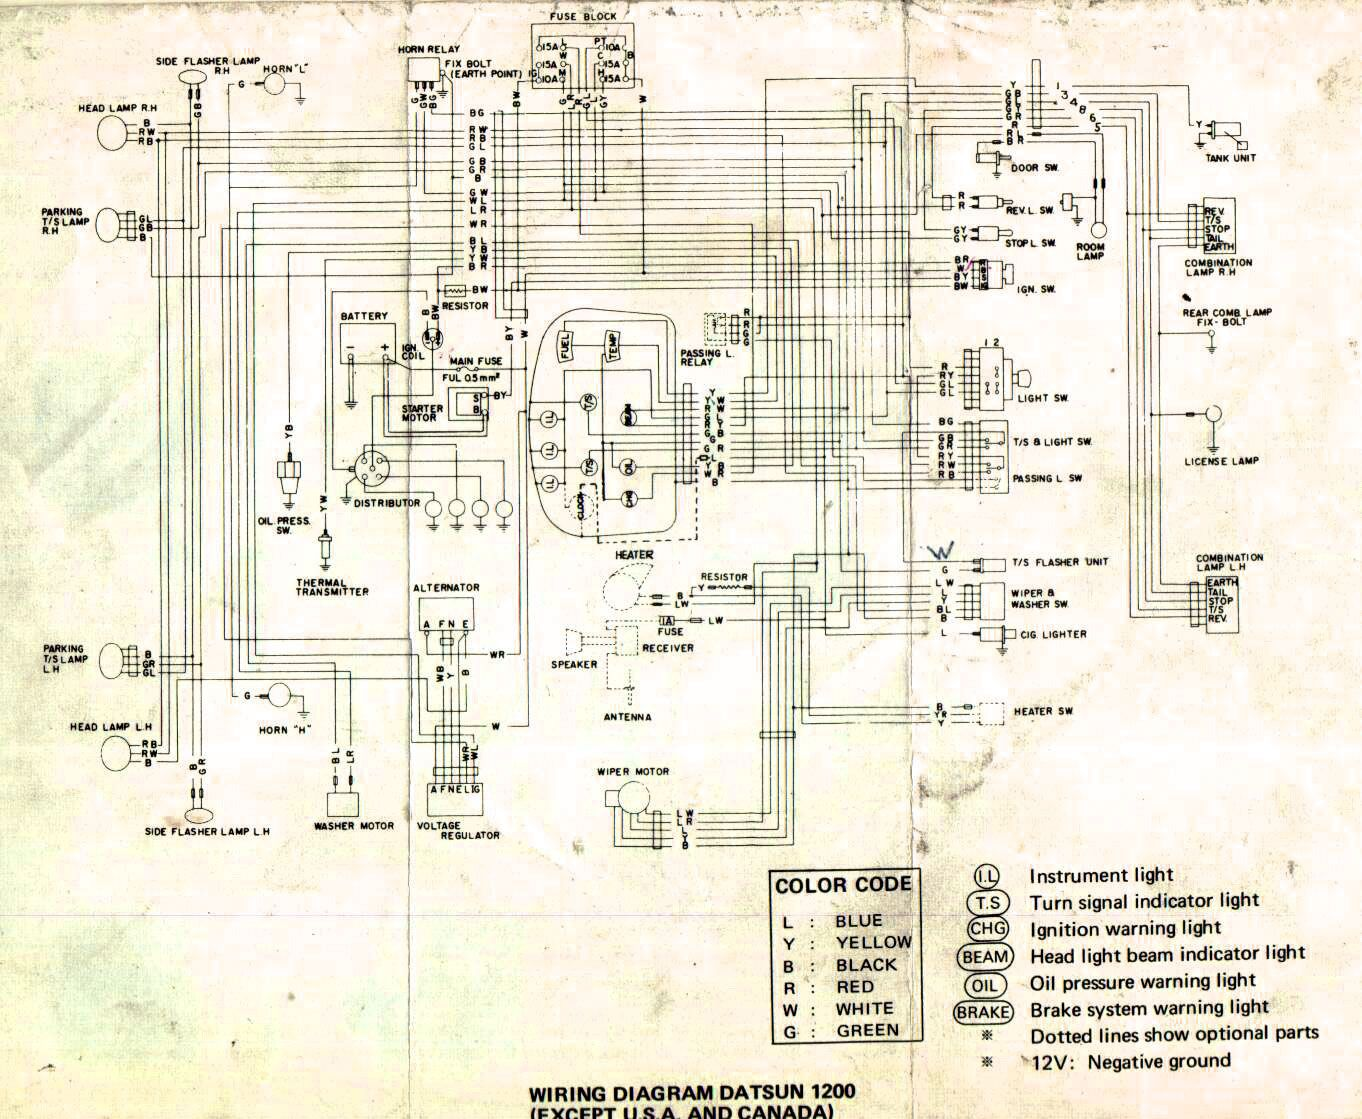 Wiring Diagram For Nissan 1400 Bakkie  8